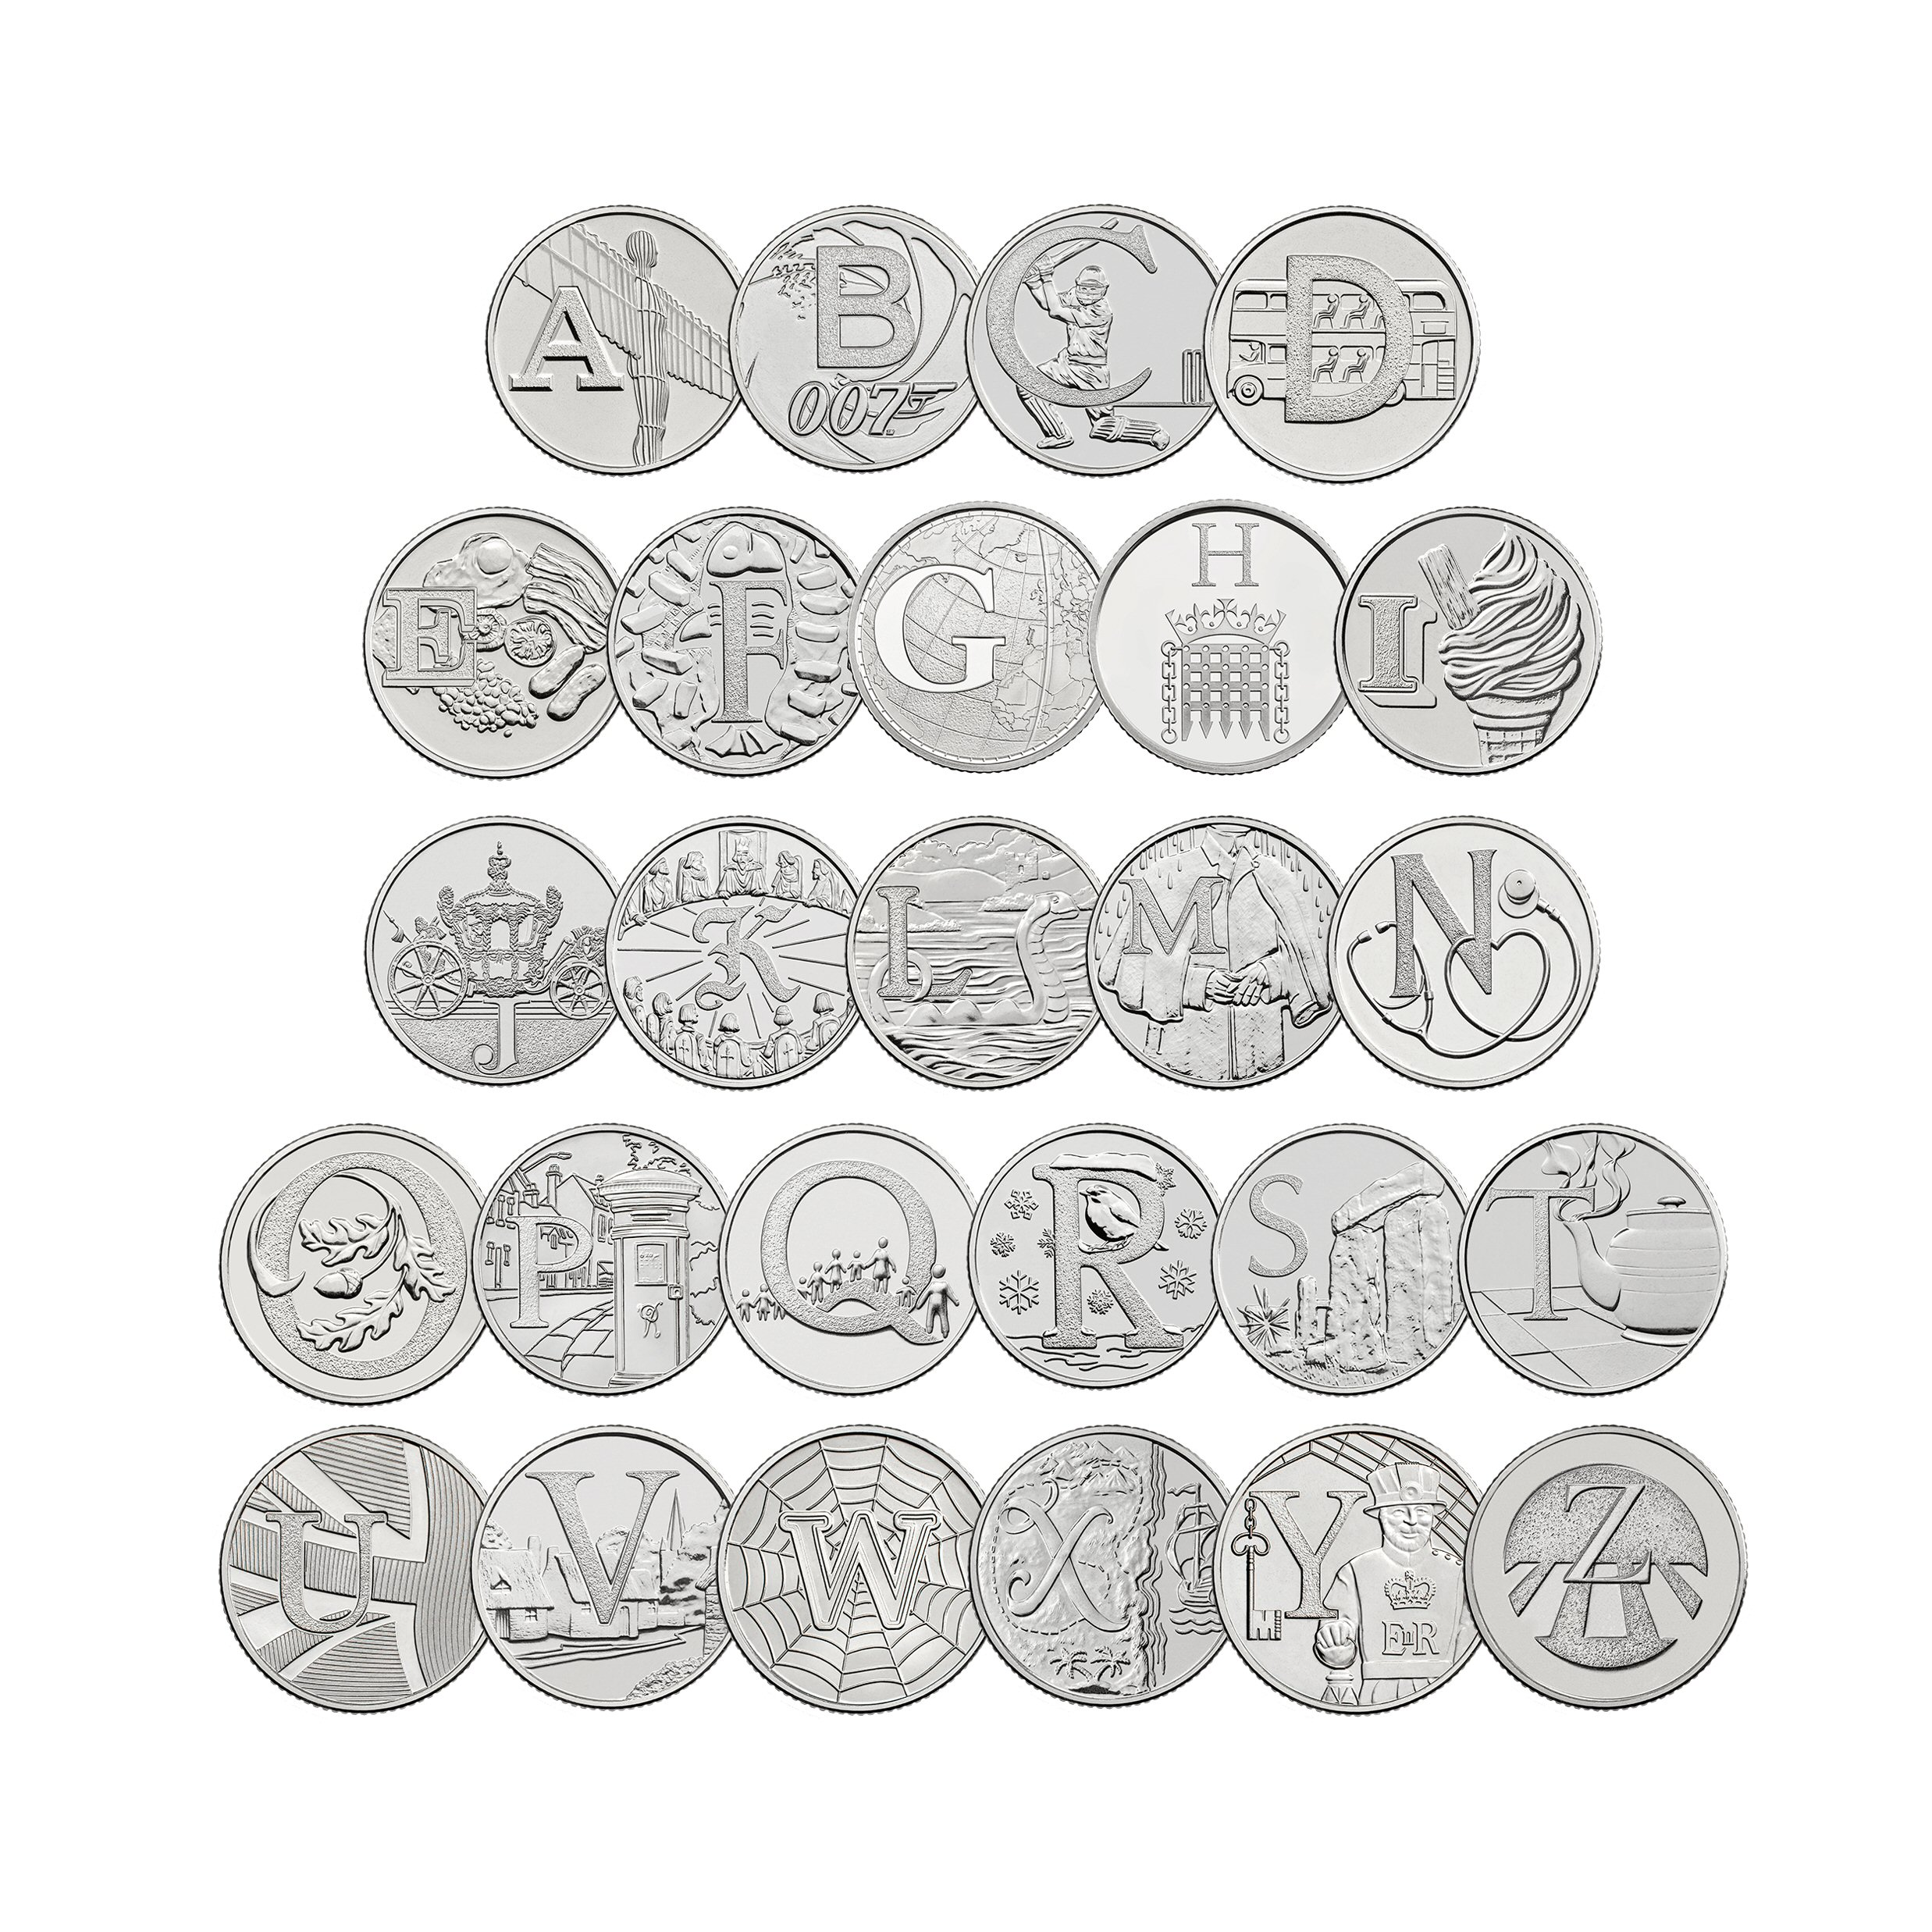 The Complete A to Z Collection 2018 UK 10p Early Strike Uncirculated Coins